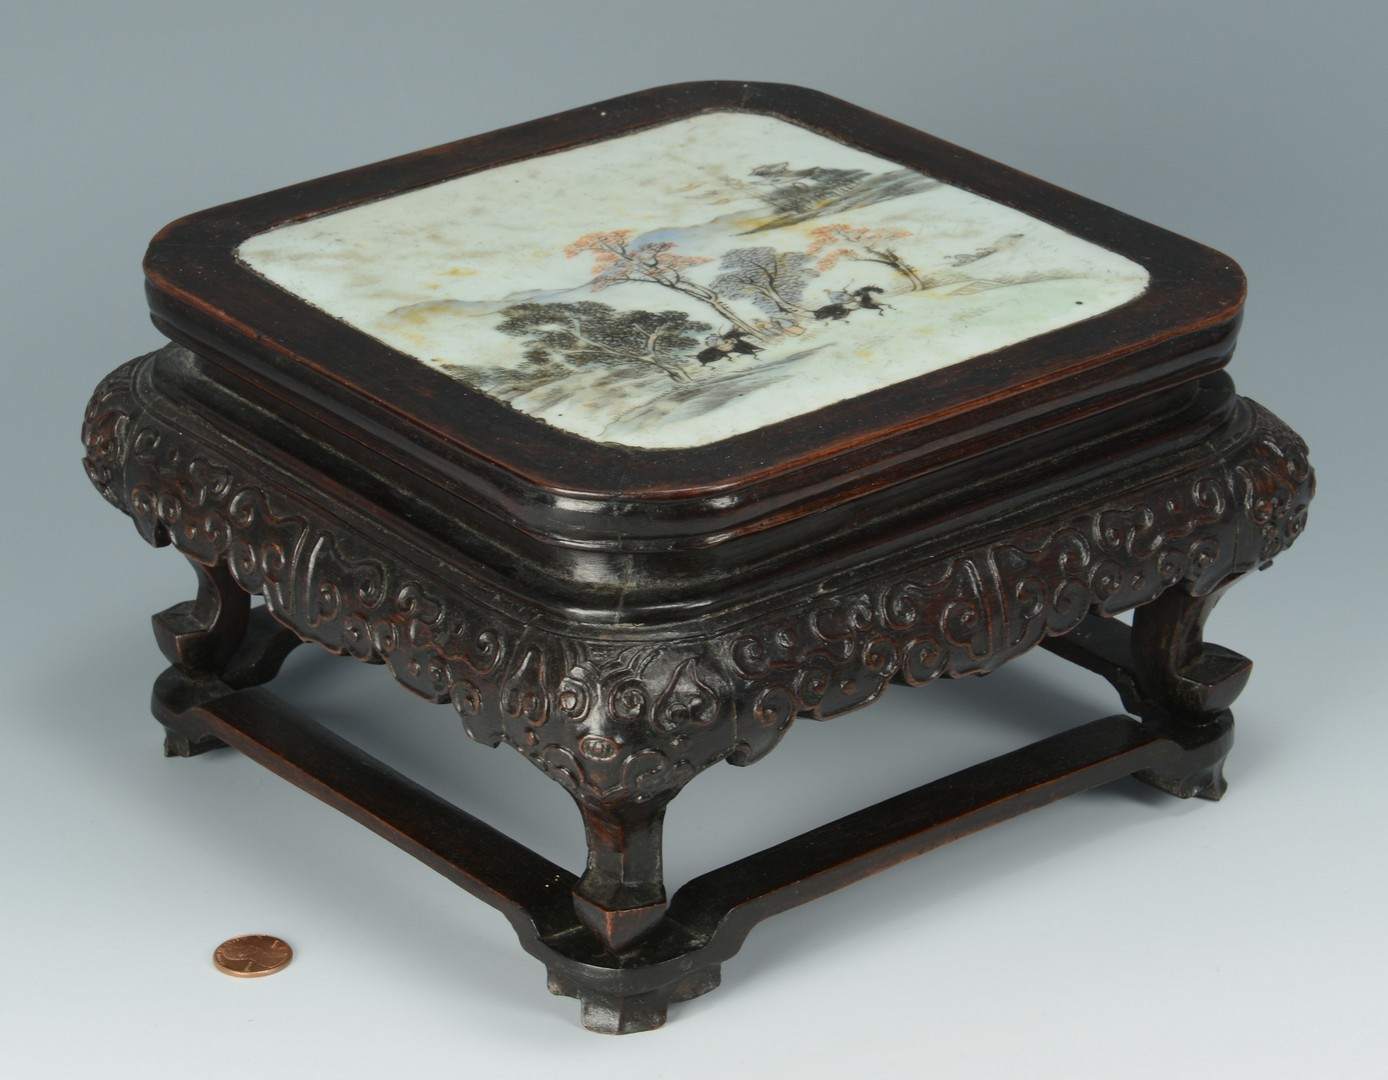 Lot 3383164: Chinese Famille Rose Plaque w/ hardwood stand